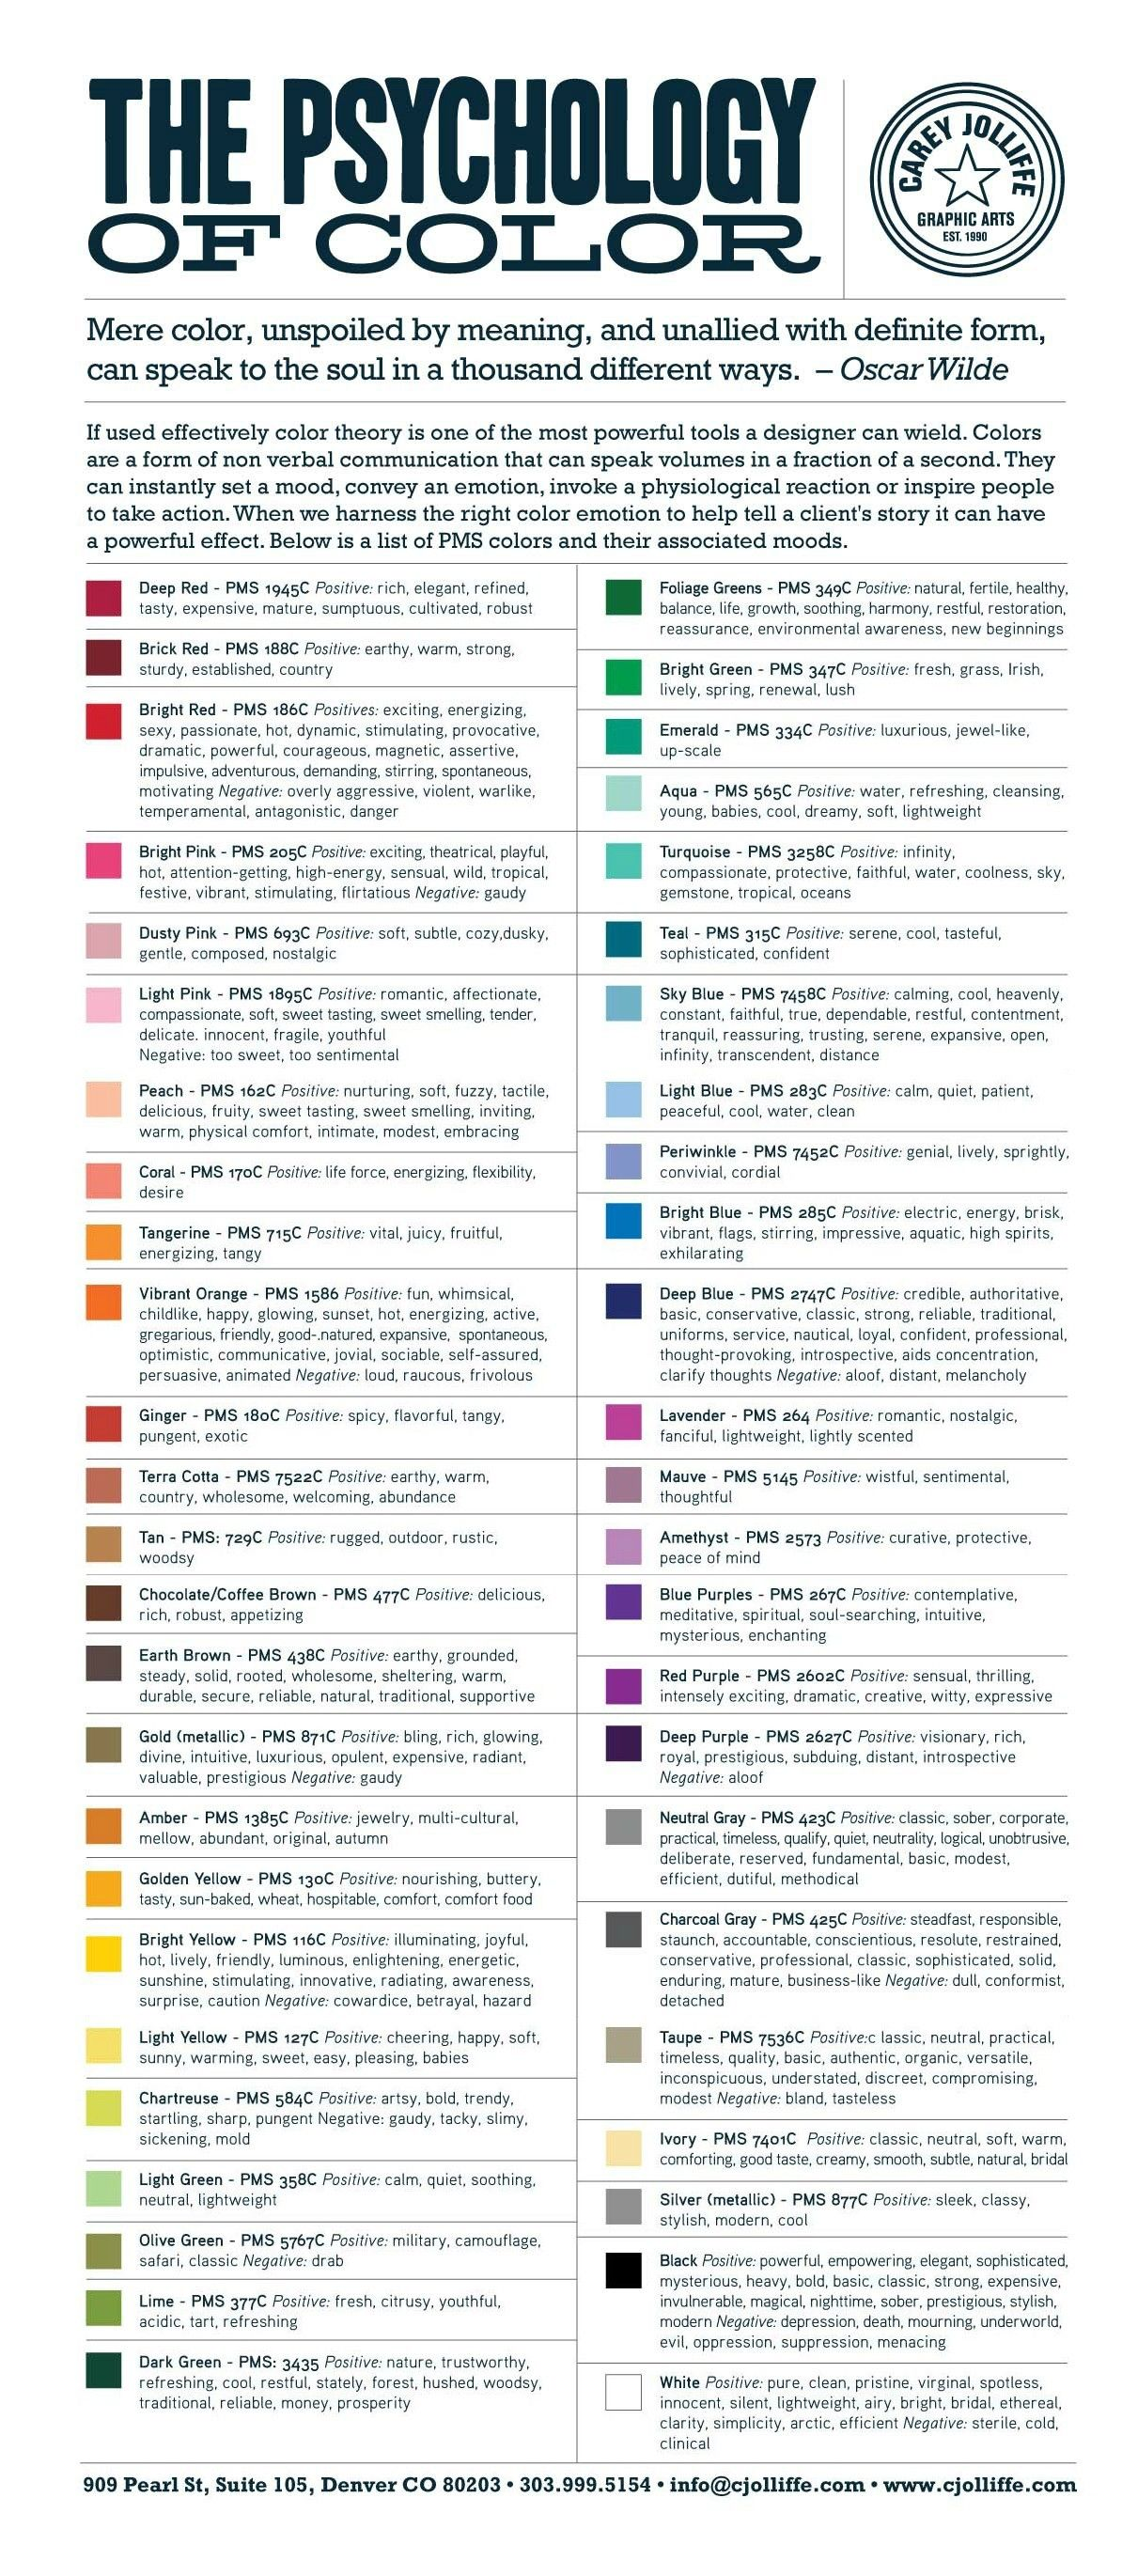 The Psychology Of Color Interesting For When I Decorate Color